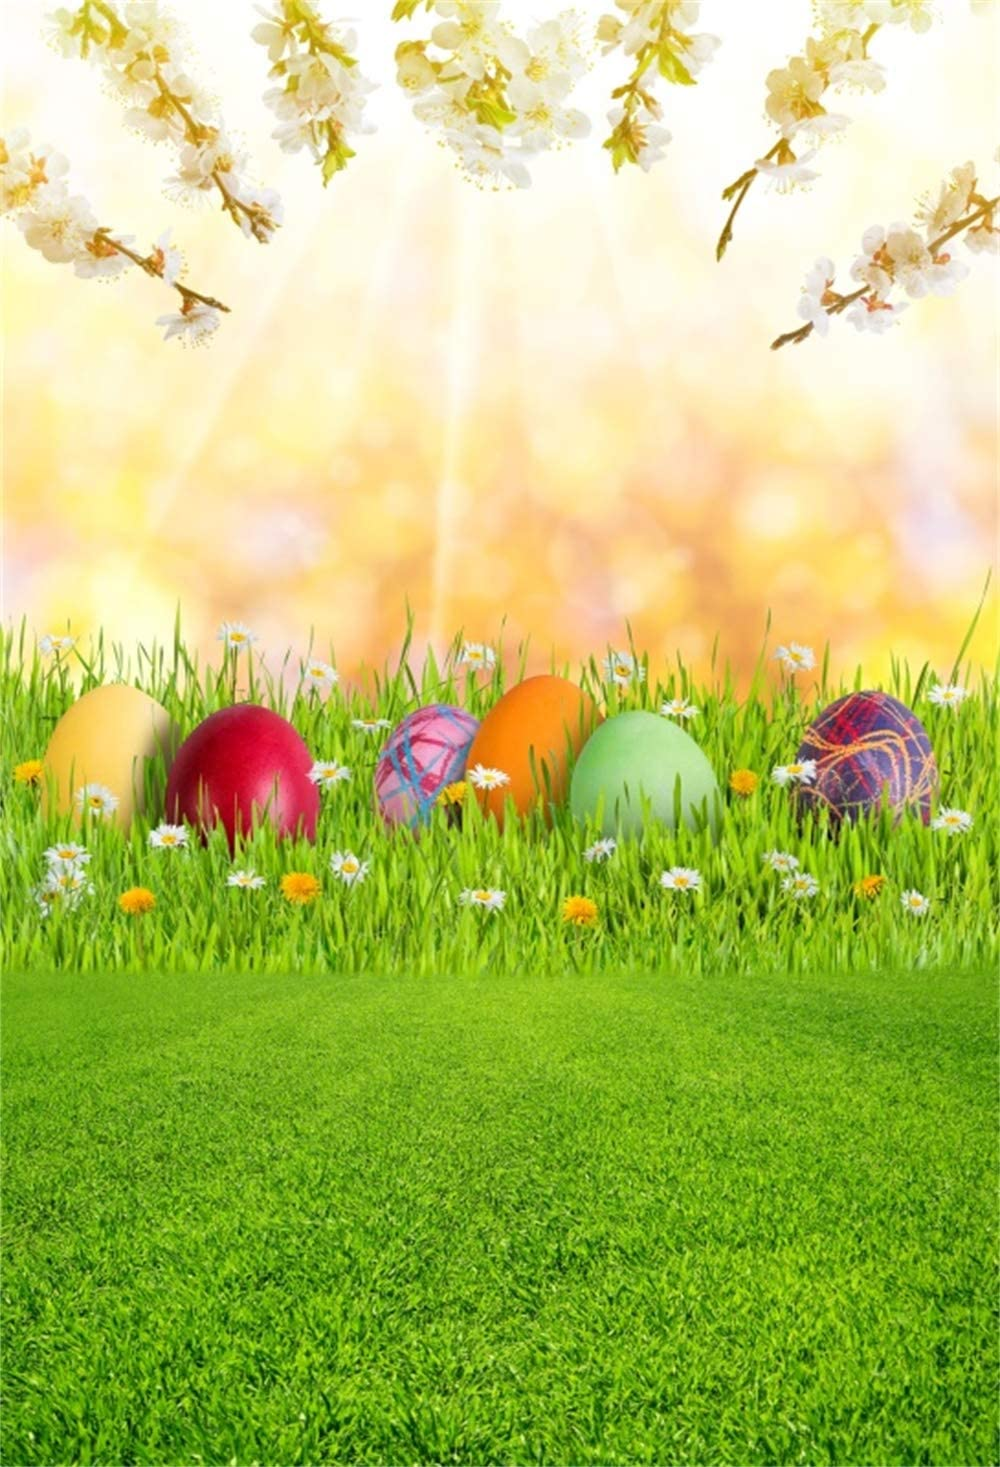 GoHeBe 10x7ft Vinyl Happy Easter Photography Background Easter Eggs Grassland Green Ribbon Bow Spring Scenic Illustration Backdrop Child Kids Baby Shoot Greeting Card Easter Egg Hunt Wallpaper